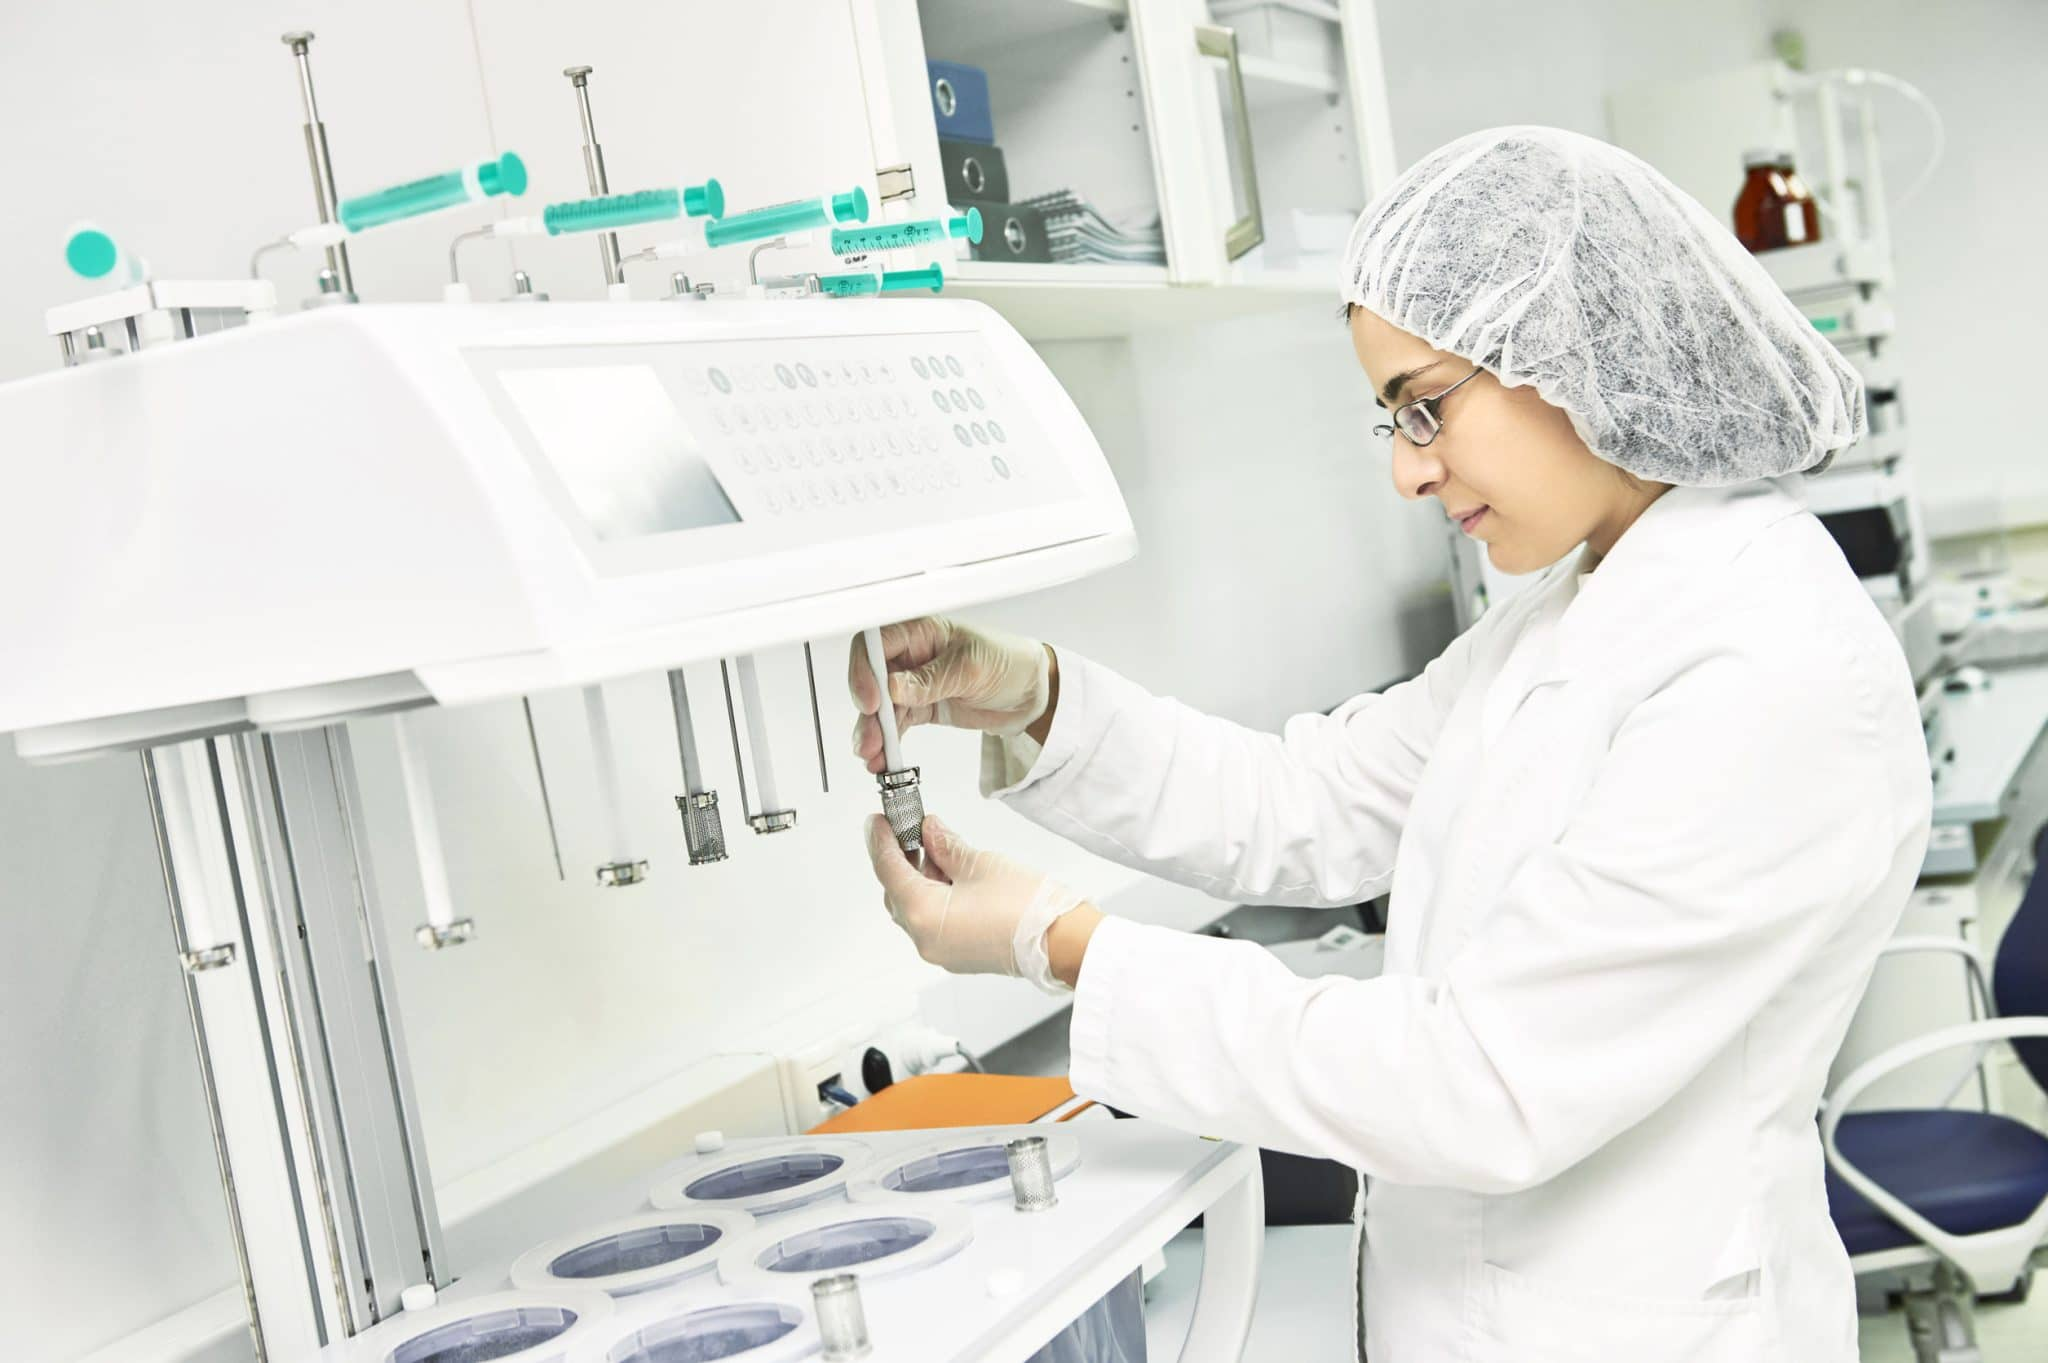 woman dressed in white lab coat and protective hairnet putting medication into a tube at a compounding pharmacy